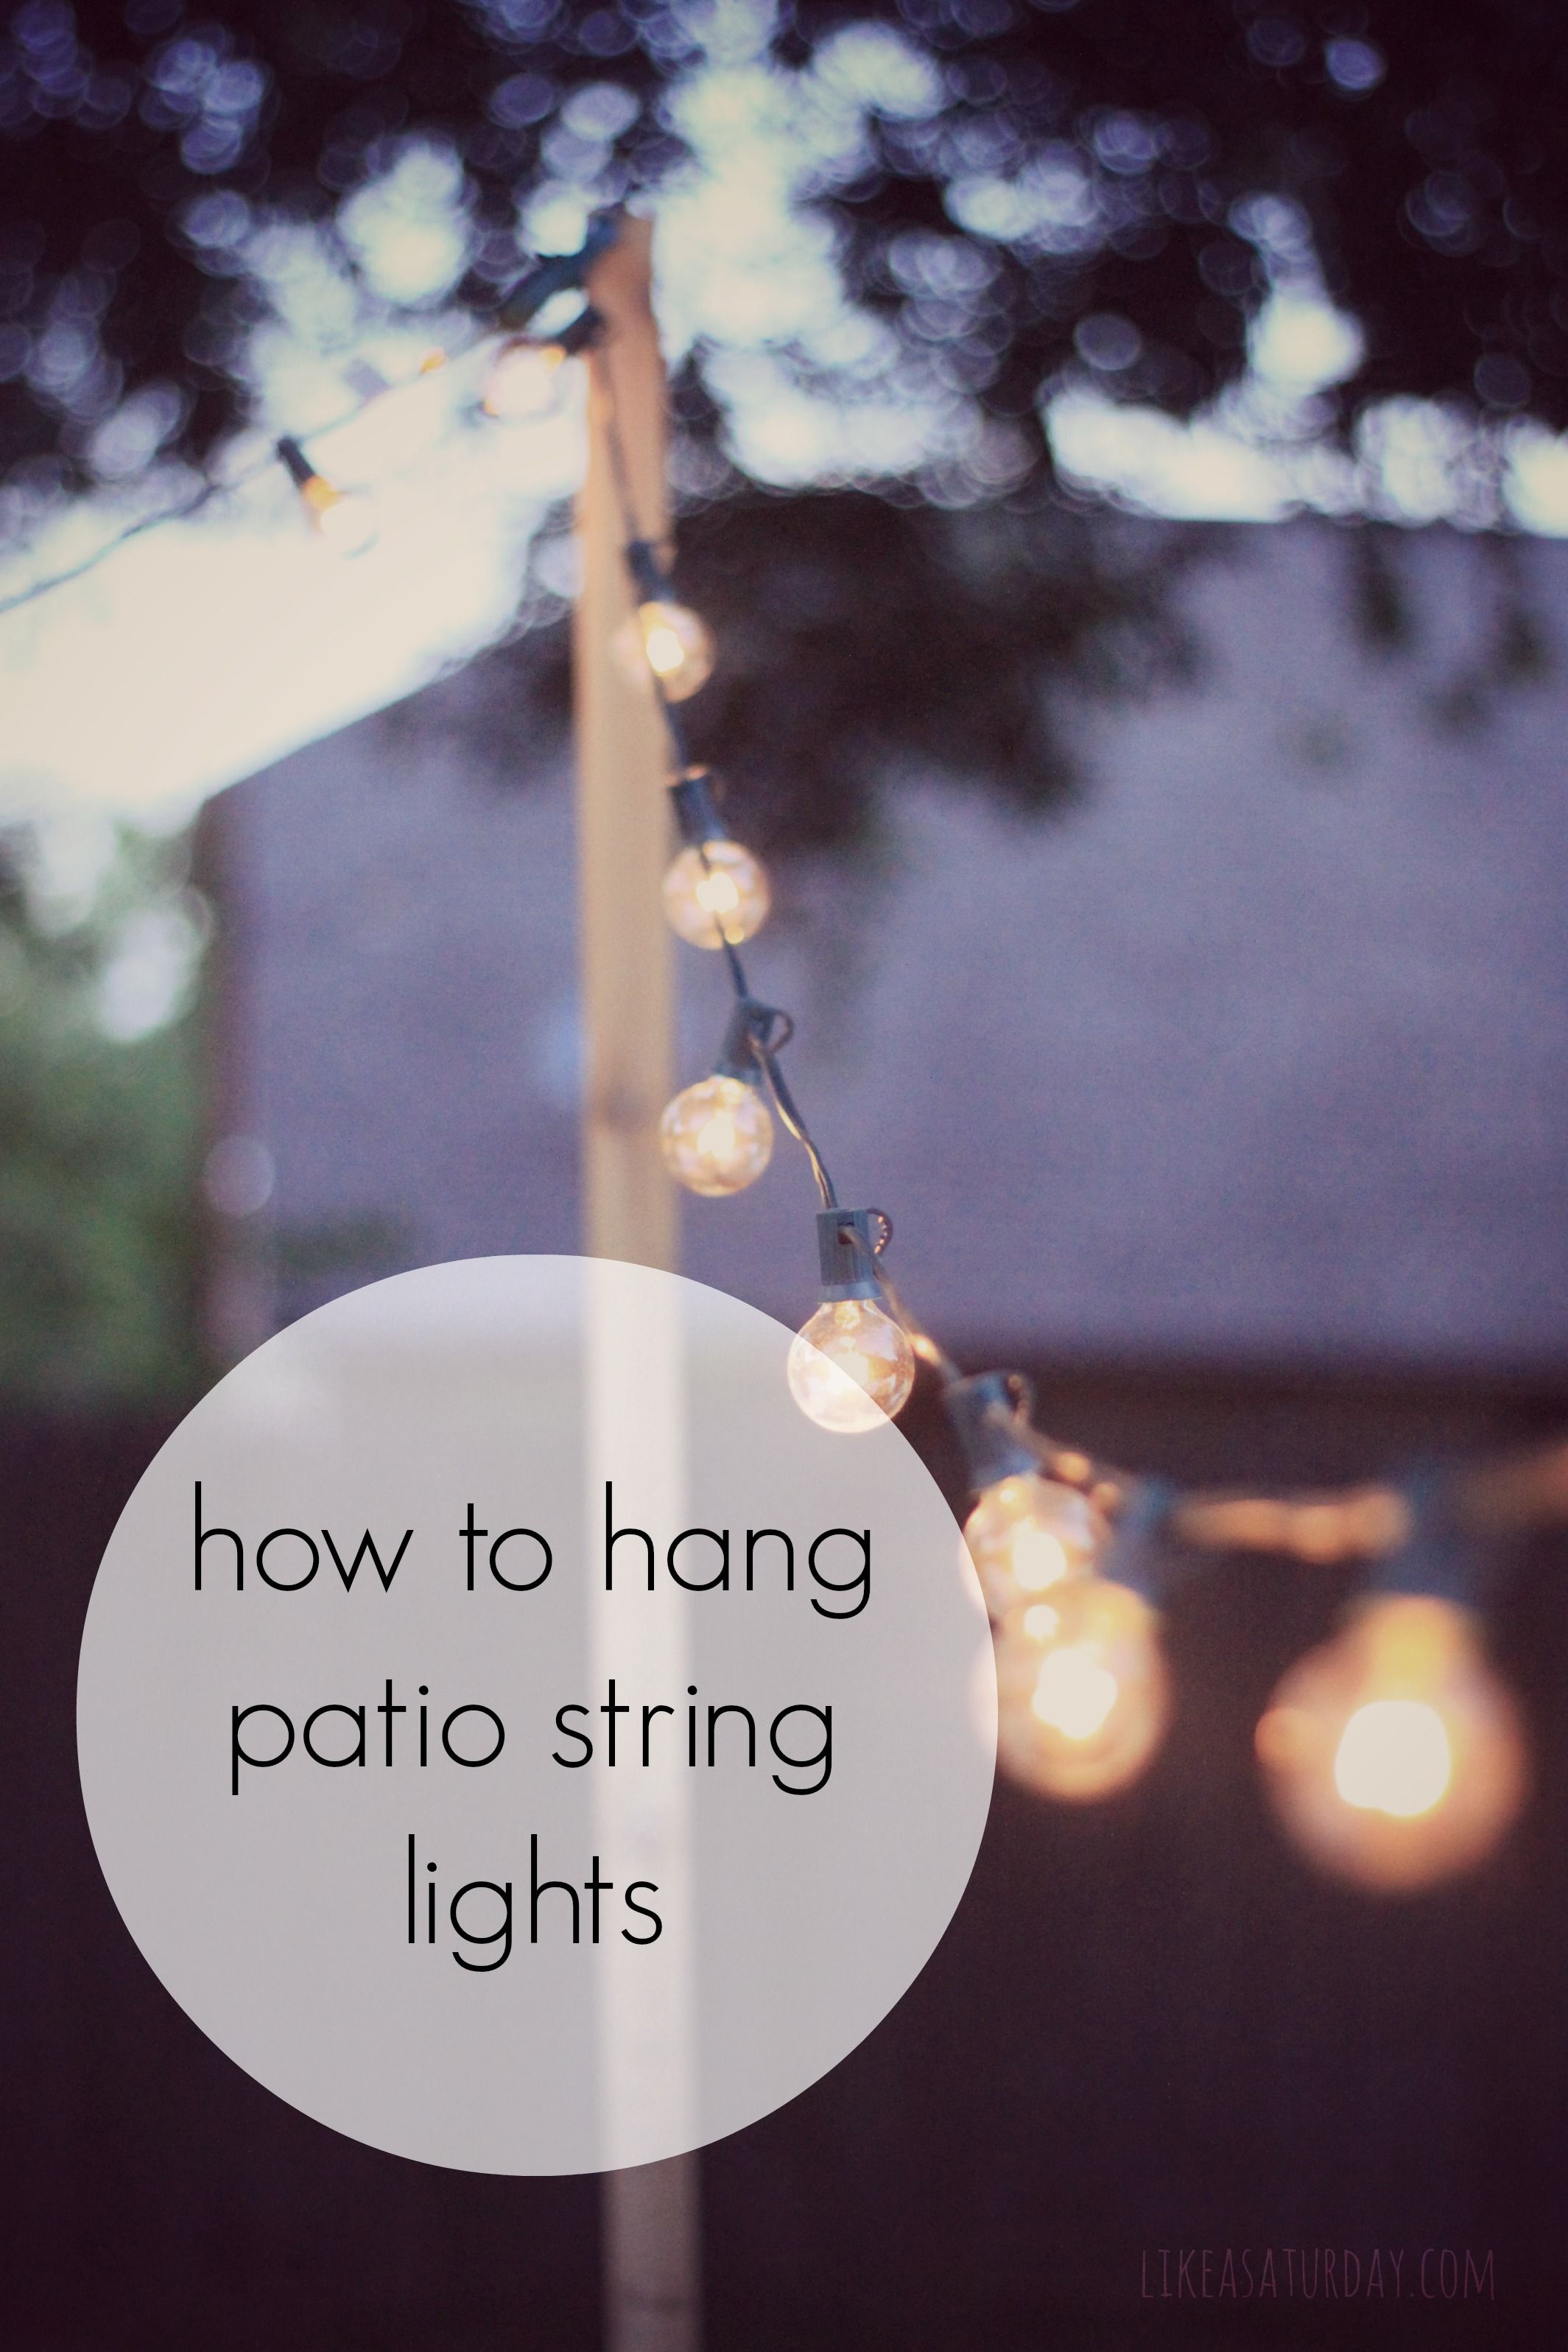 how to hang patio string lights | best of pinterest | pinterest ... - Patio Lights String Ideas